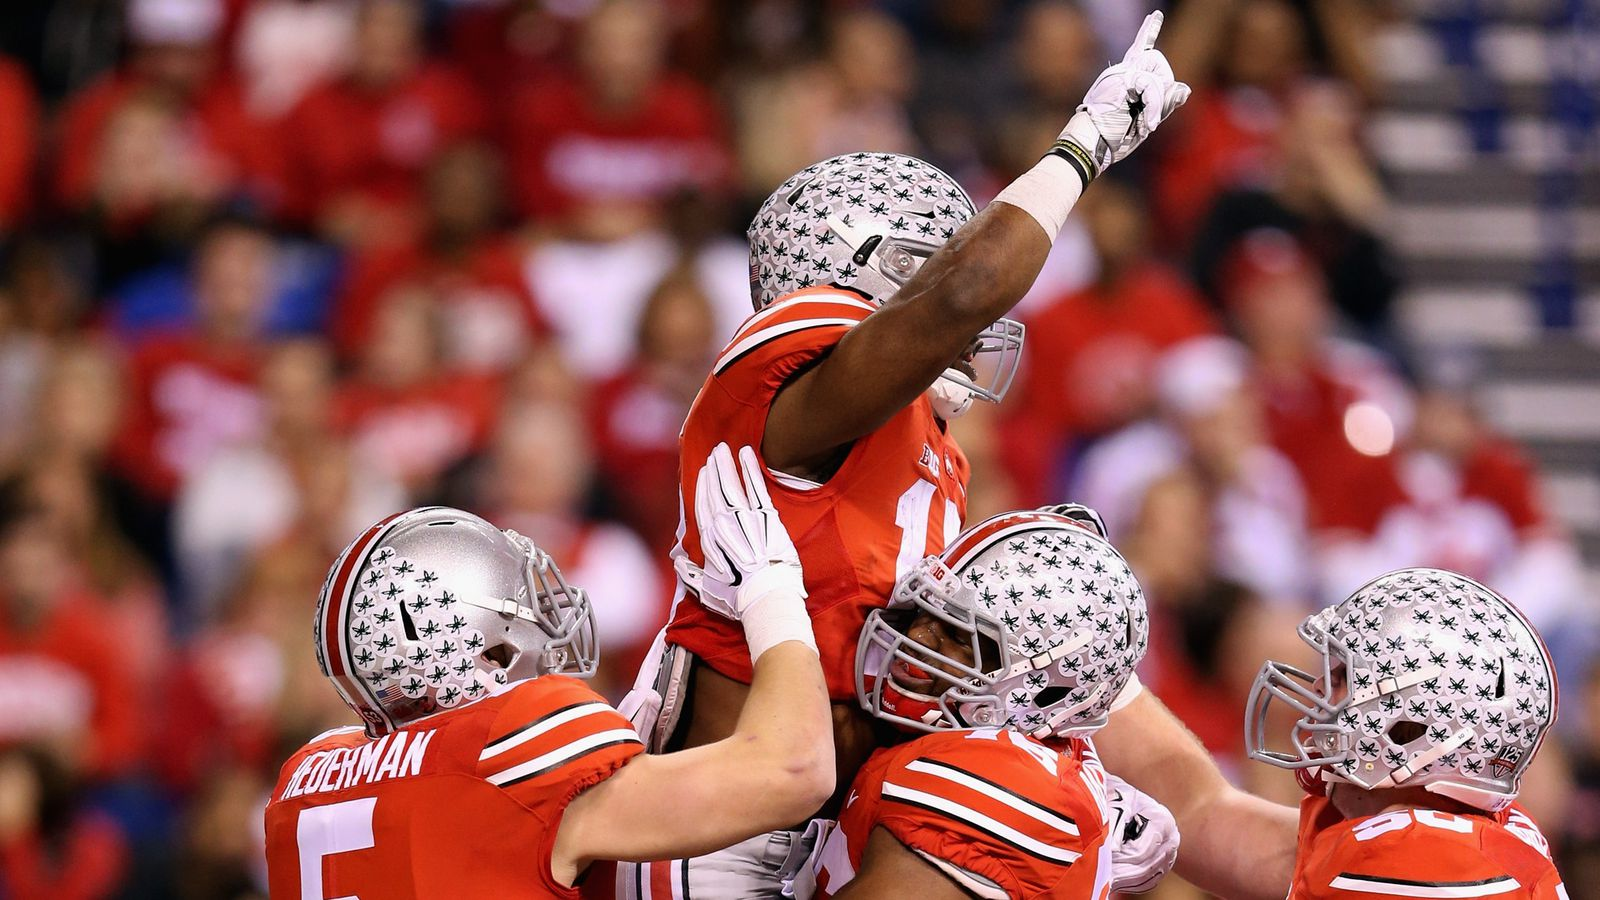 college football all scores what is the football schedule for this weekend